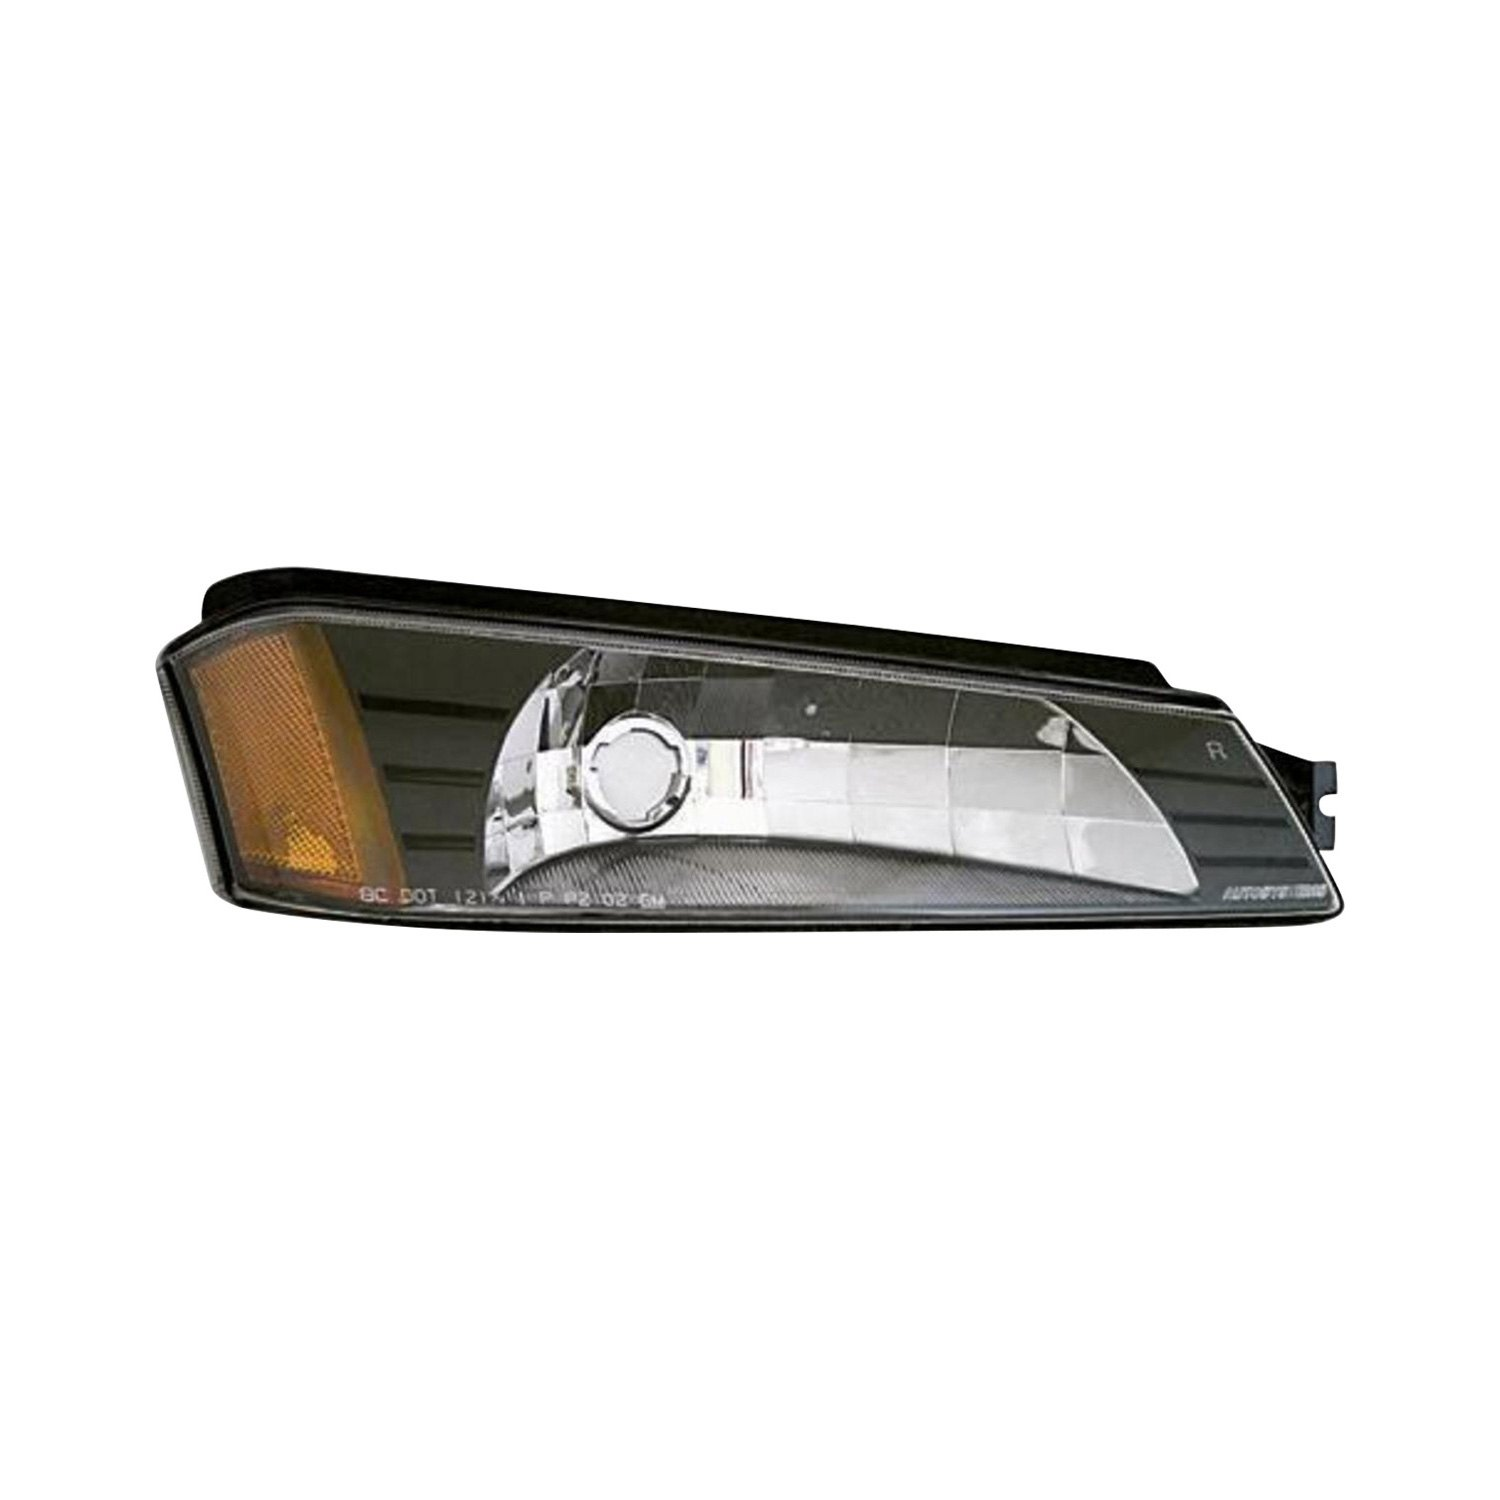 TYC 18 5835 01 1 Passenger Side NSF Certified Replacement Turn Signal Pa